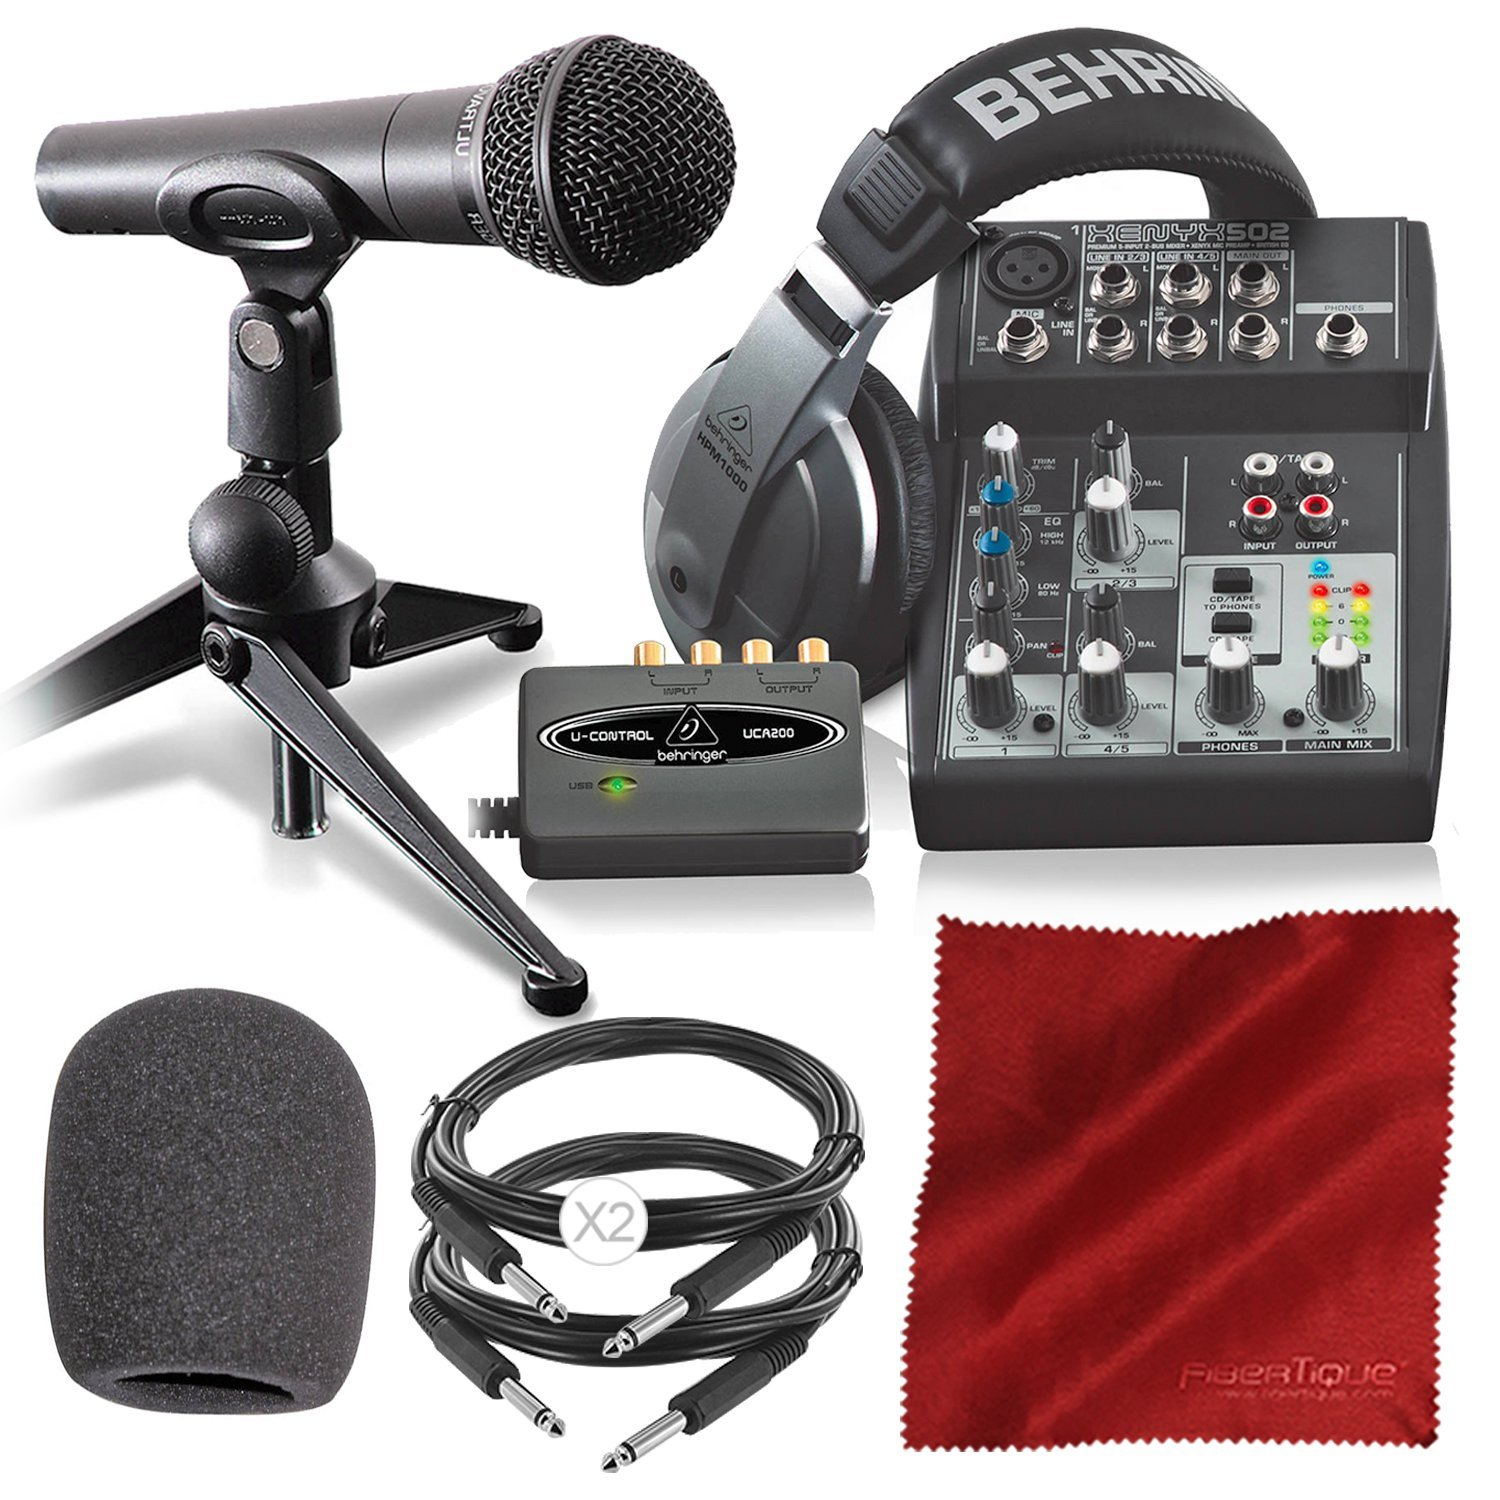 Behringer PODCASTUDIO USB Complete Podcasting Kit w/USB Audio Interface Basic Accessory Bundle Photo Savings